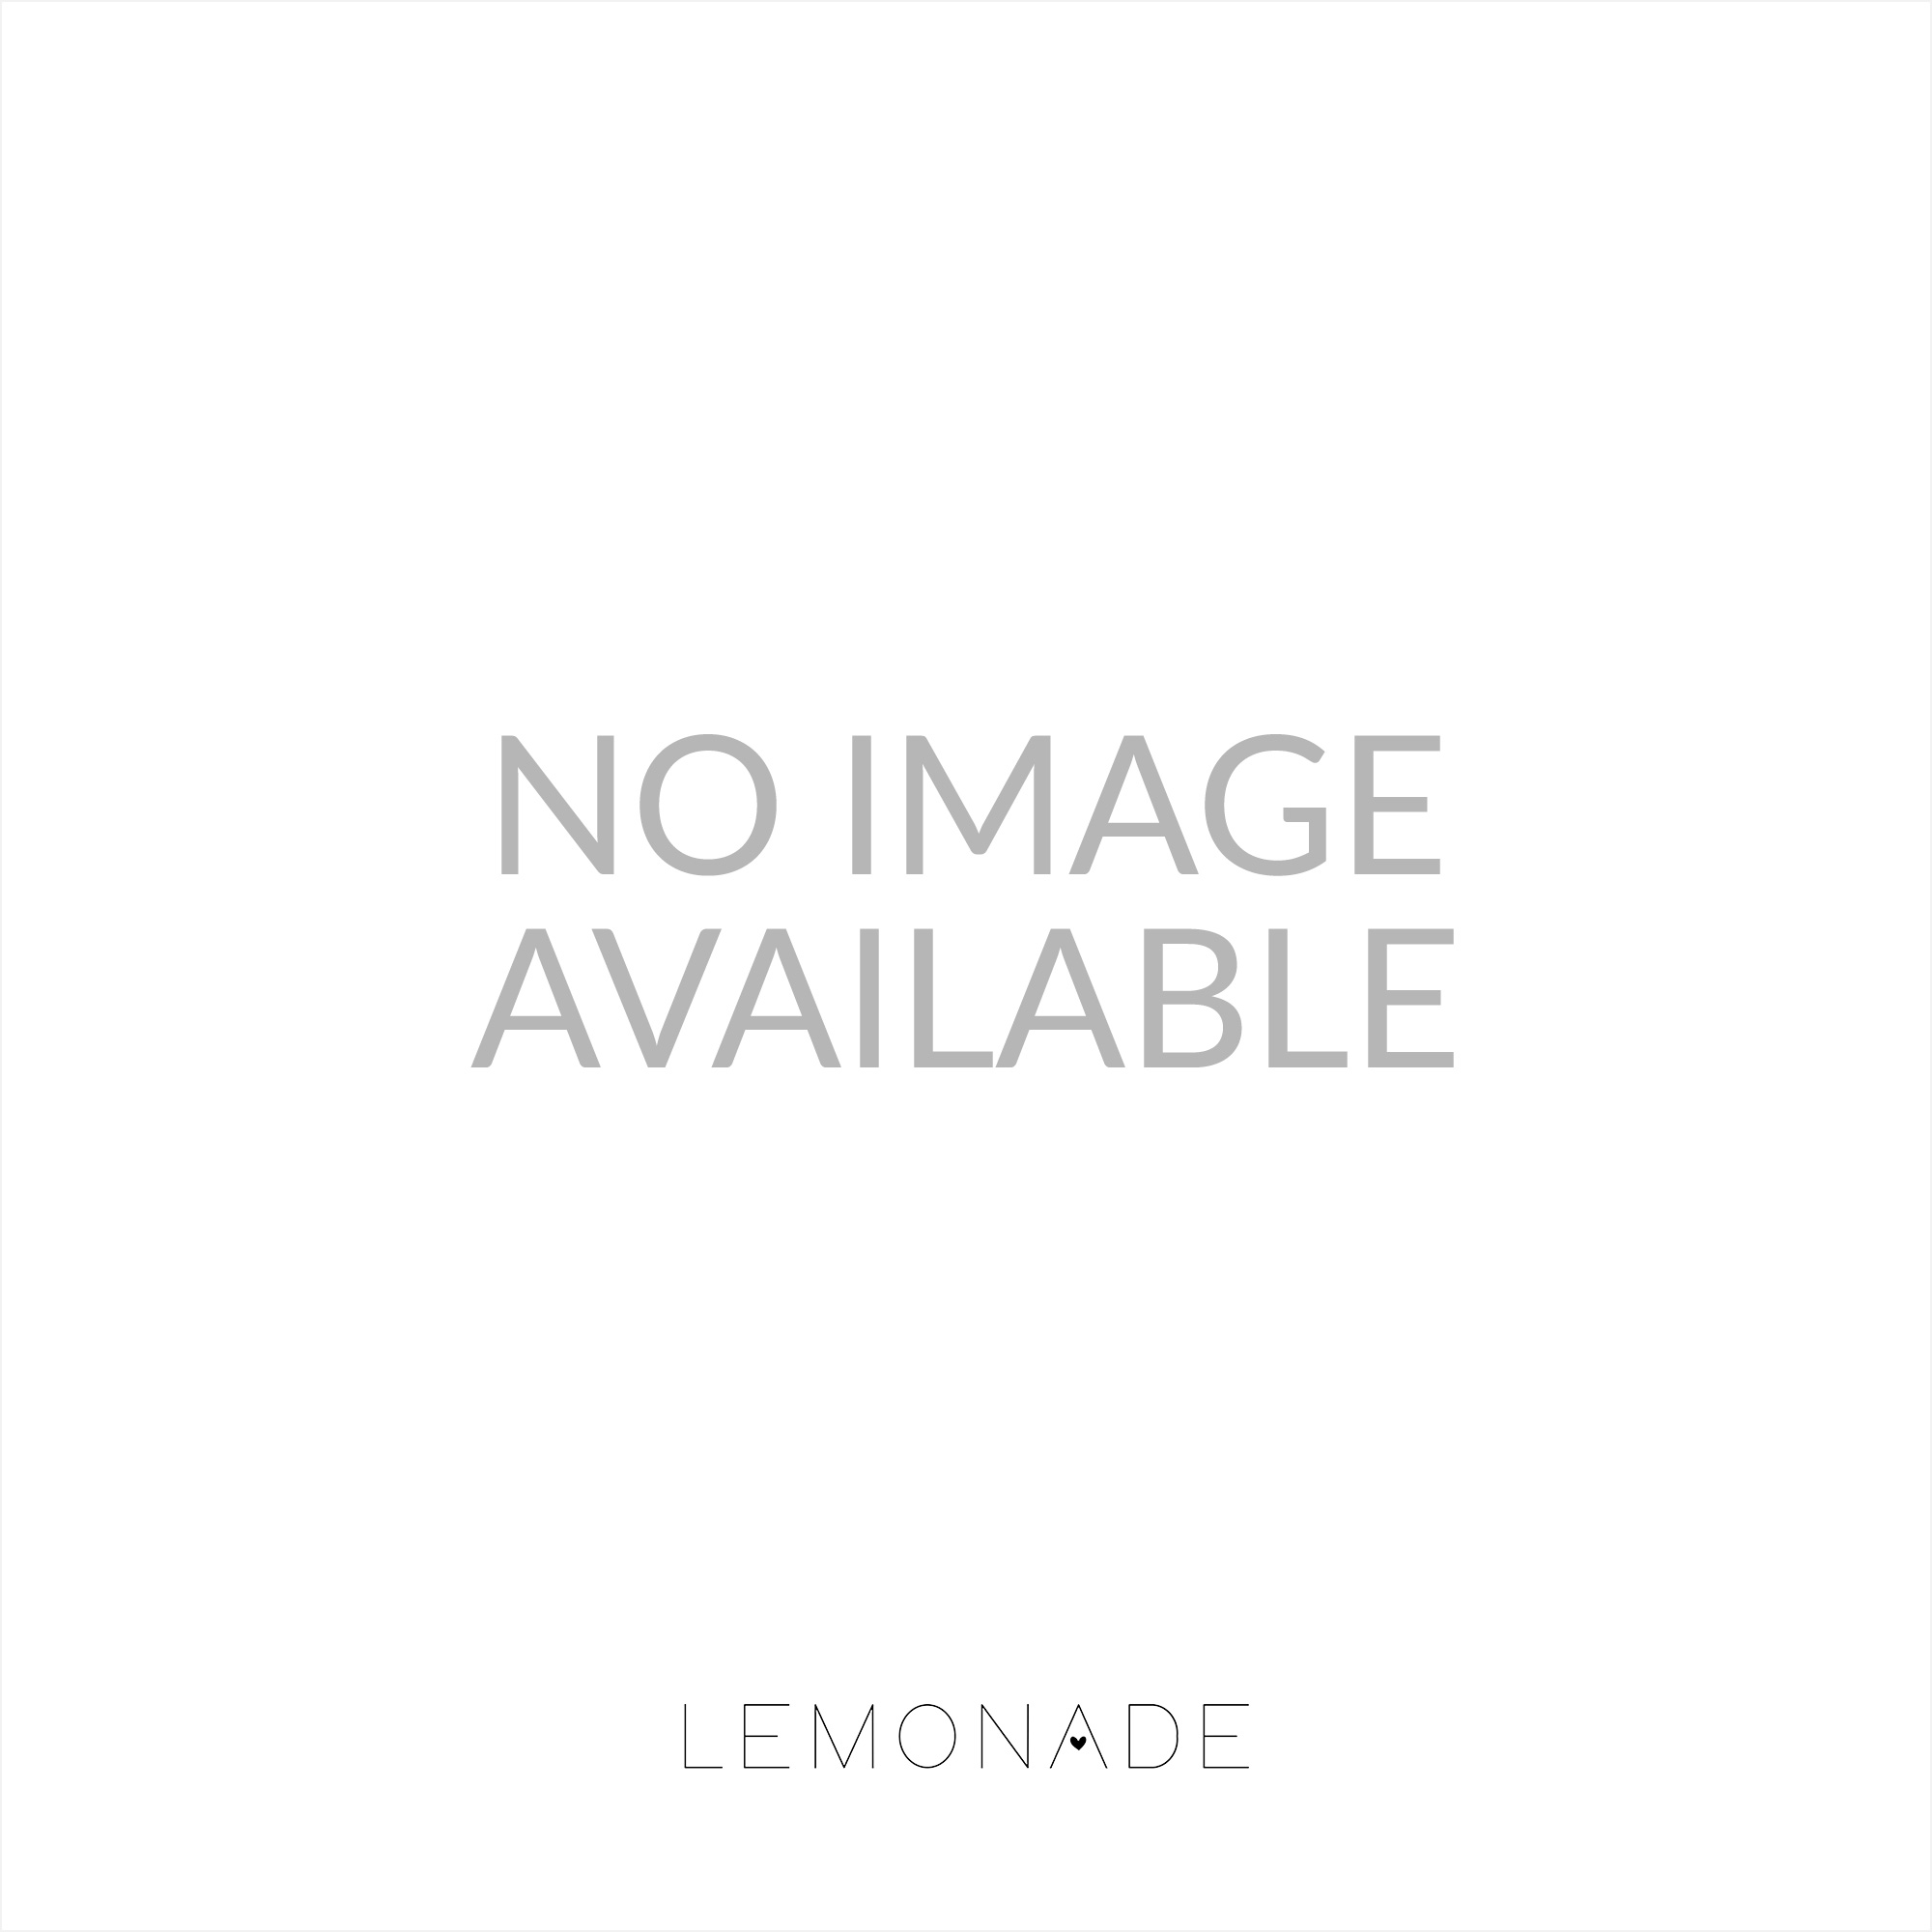 Lemonade Crushed Ice Photo Frame Silver 4x6